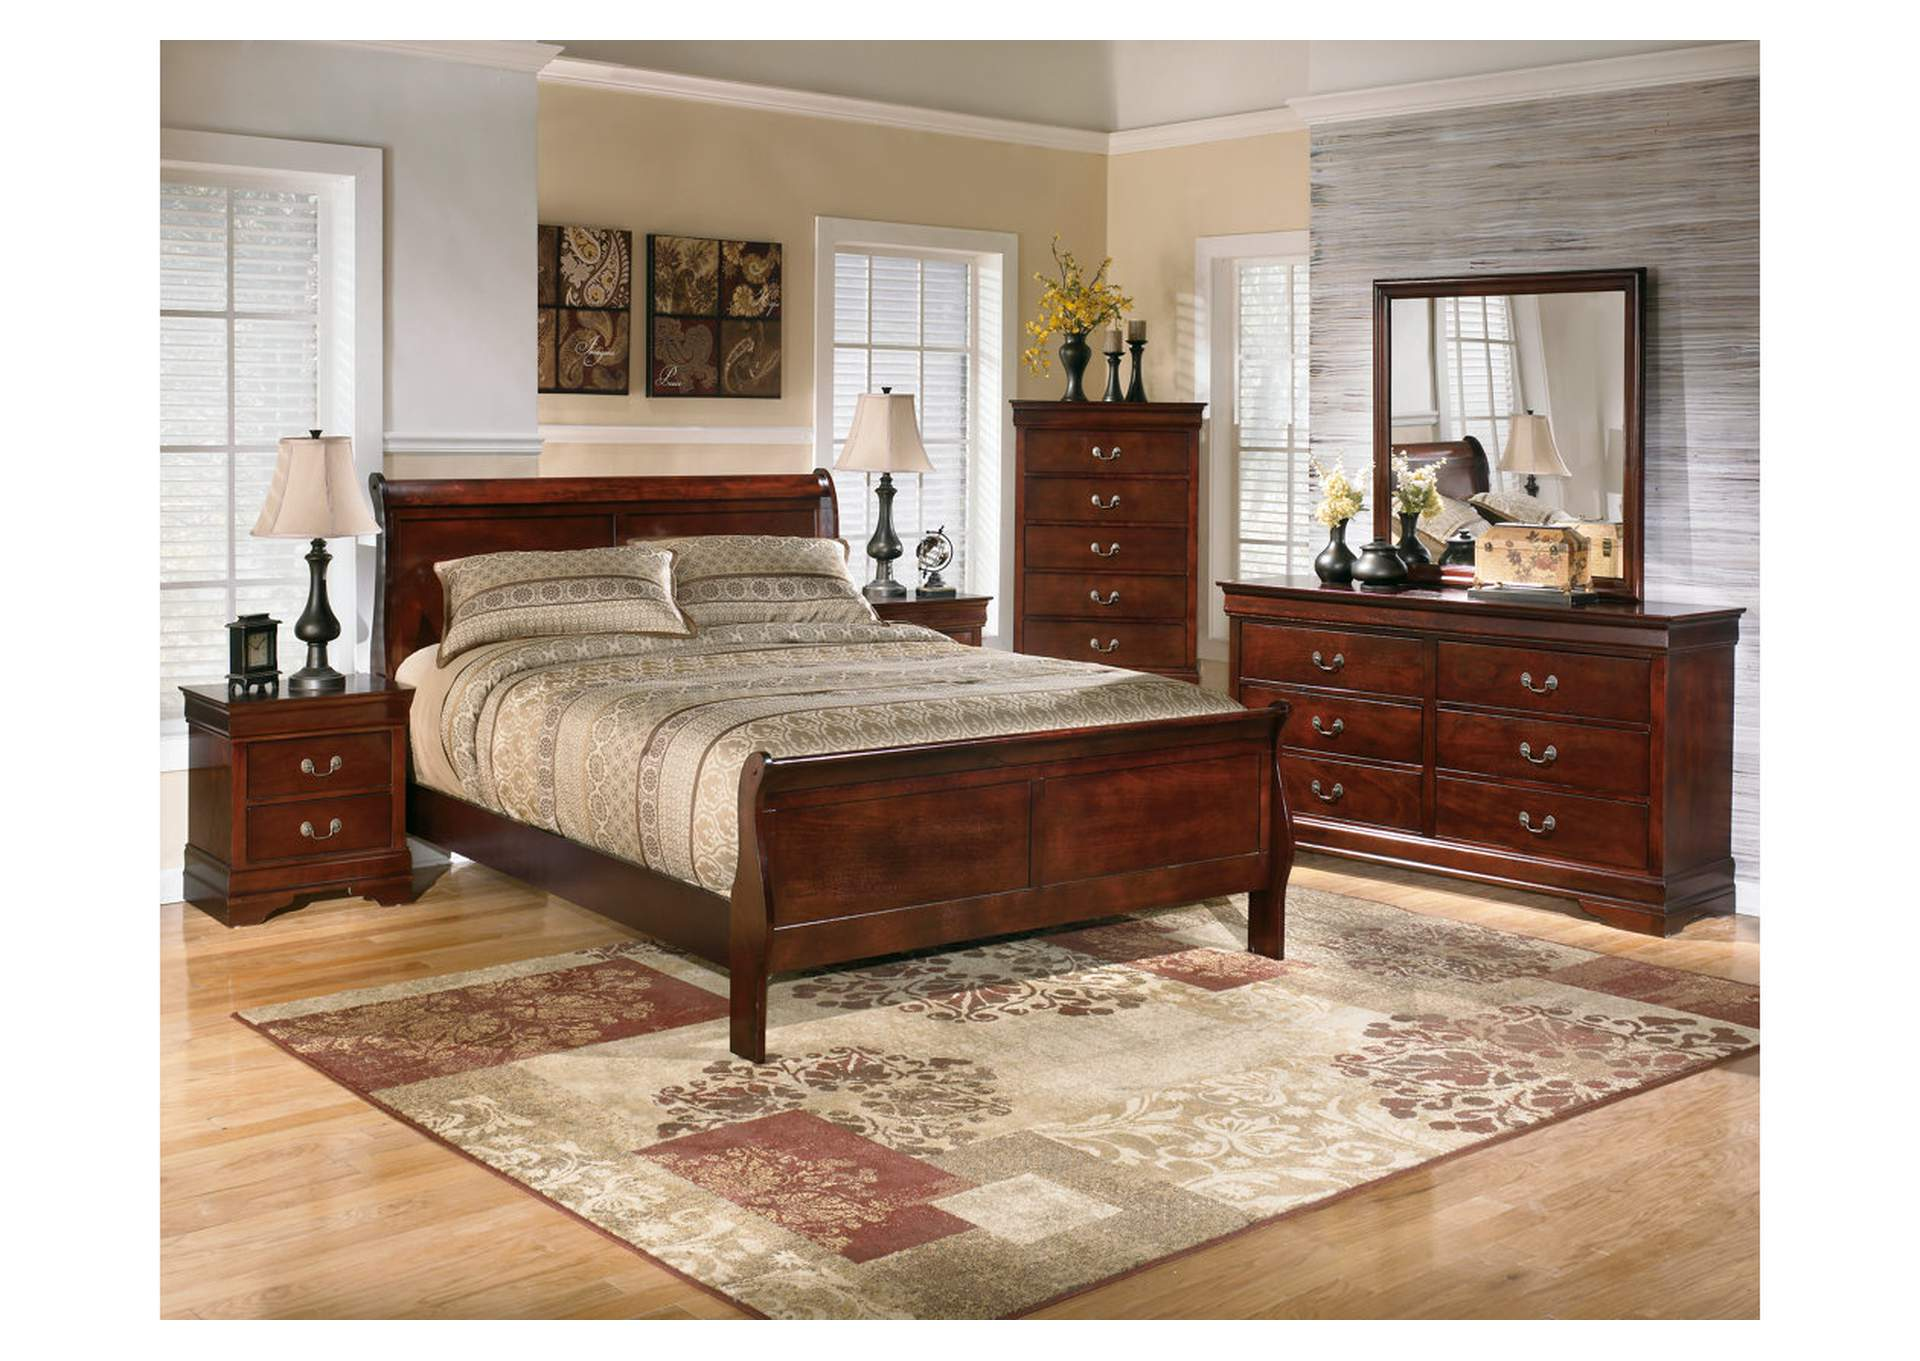 Alisdair California King Sleigh Bed w/Dresser, Mirror, Drawer Chest & Nightstand,Signature Design By Ashley